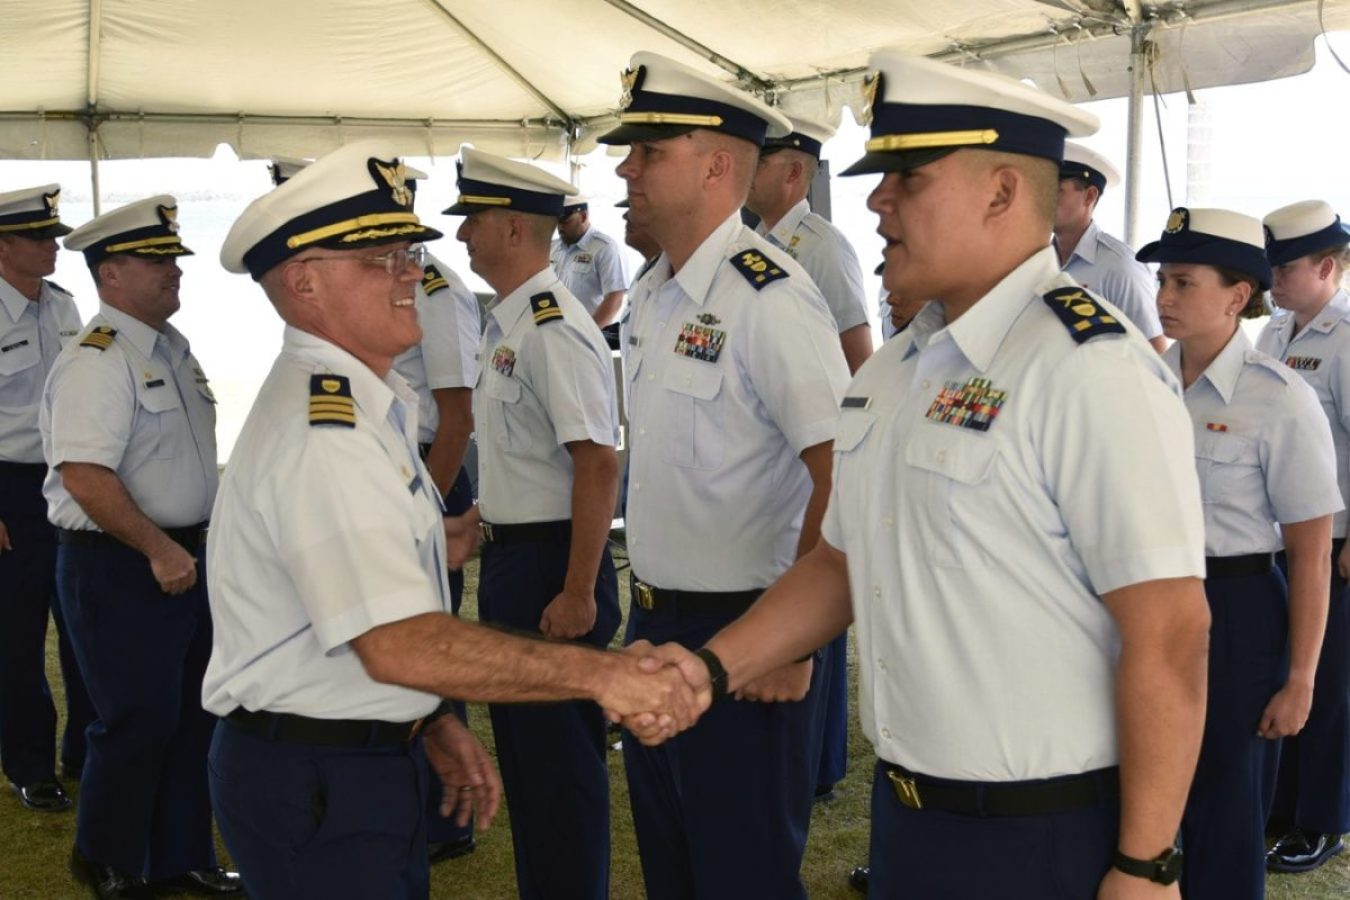 Cmdr. Javier Delgado, commanding officer of Base San Juan, inspects and greets unit personnel during the April 30, 2019 ceremony in Puerto Rico established Base San Juan as a new Coast Guard unit. Base San Juan will be providing essential mission support services to Sector San Juan, as the Sector focuses on conducting vital Coast Guard missions in the Eastern Caribbean.